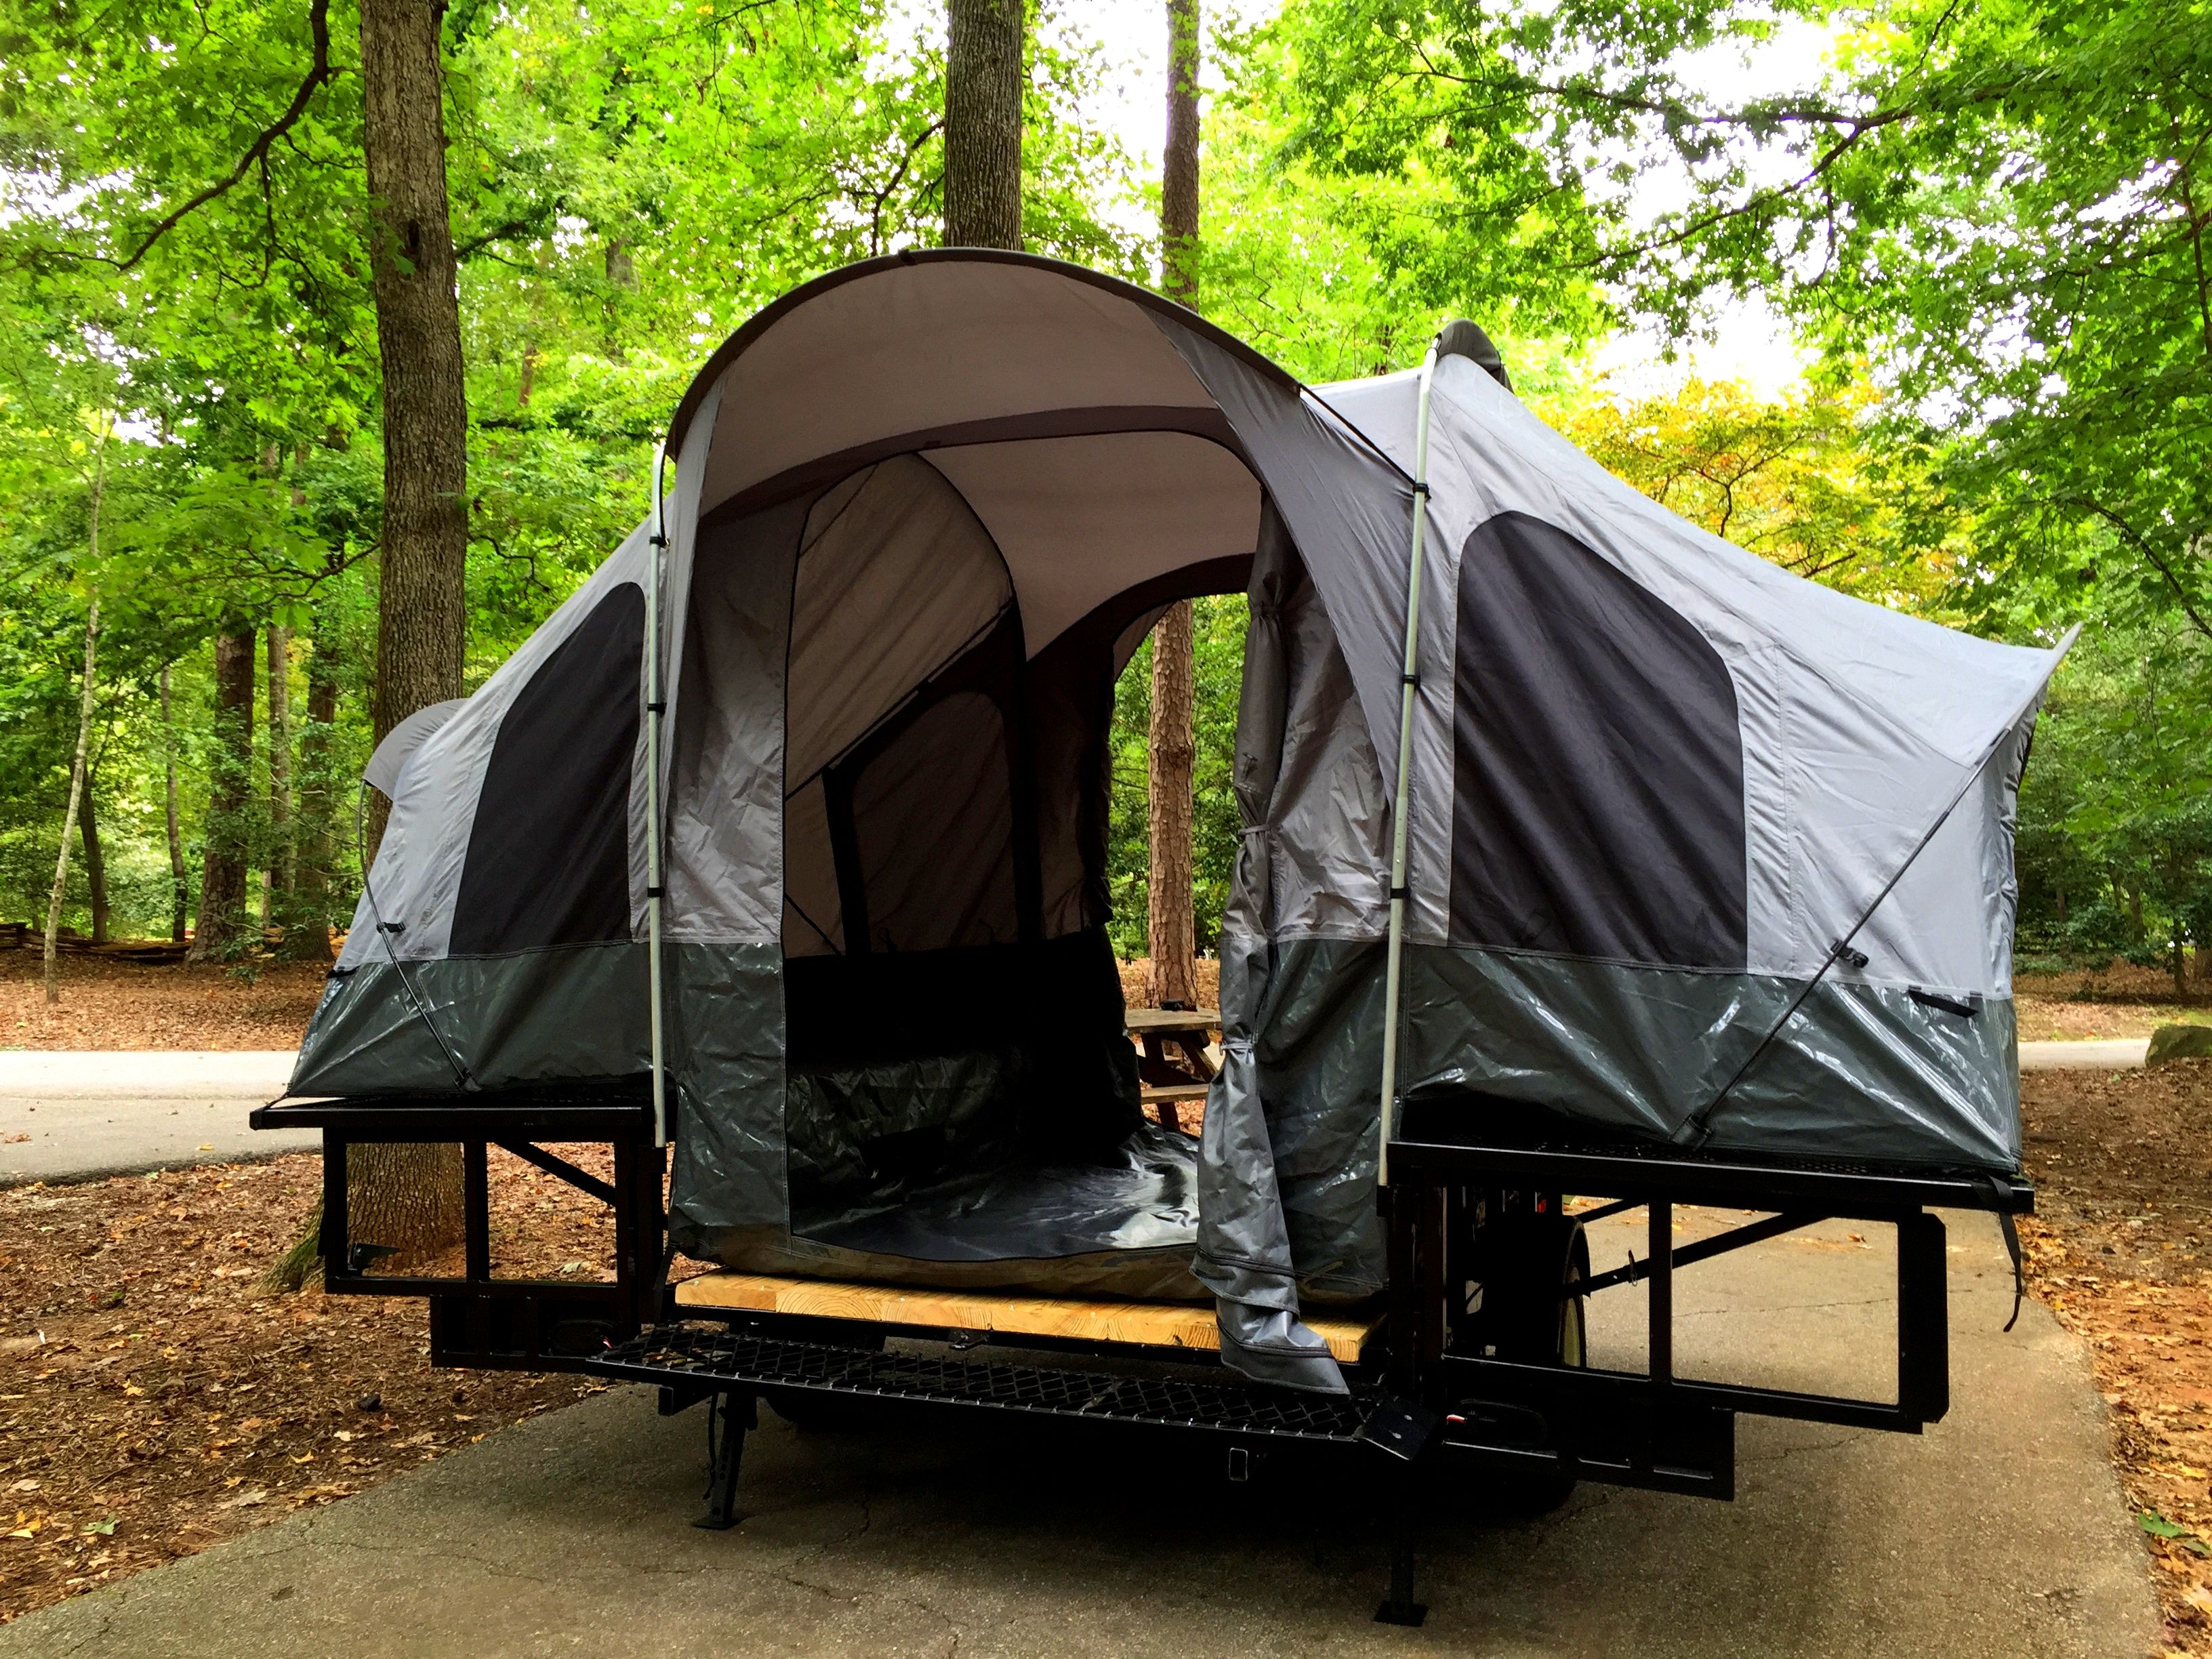 Double Duty Utility Camping Trailer Tent trailer camping